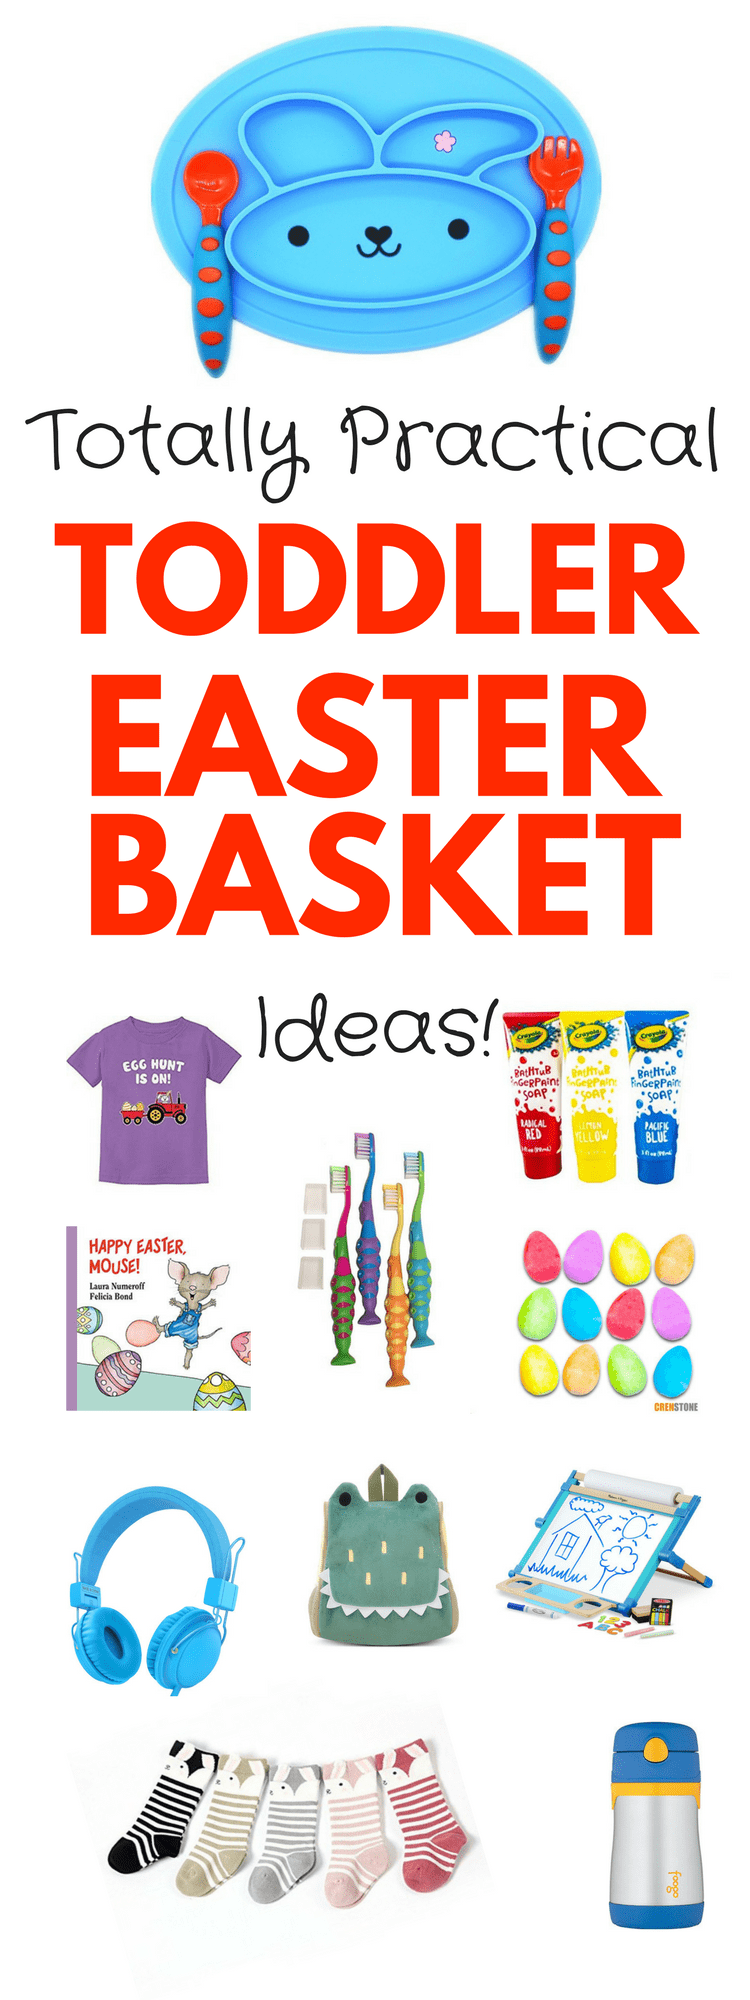 25 Non Candy Easter Basket Ideas For Toddlers That Are Totally Practical Kids Easter Basket Easter Baskets For Toddlers Easter Baskets